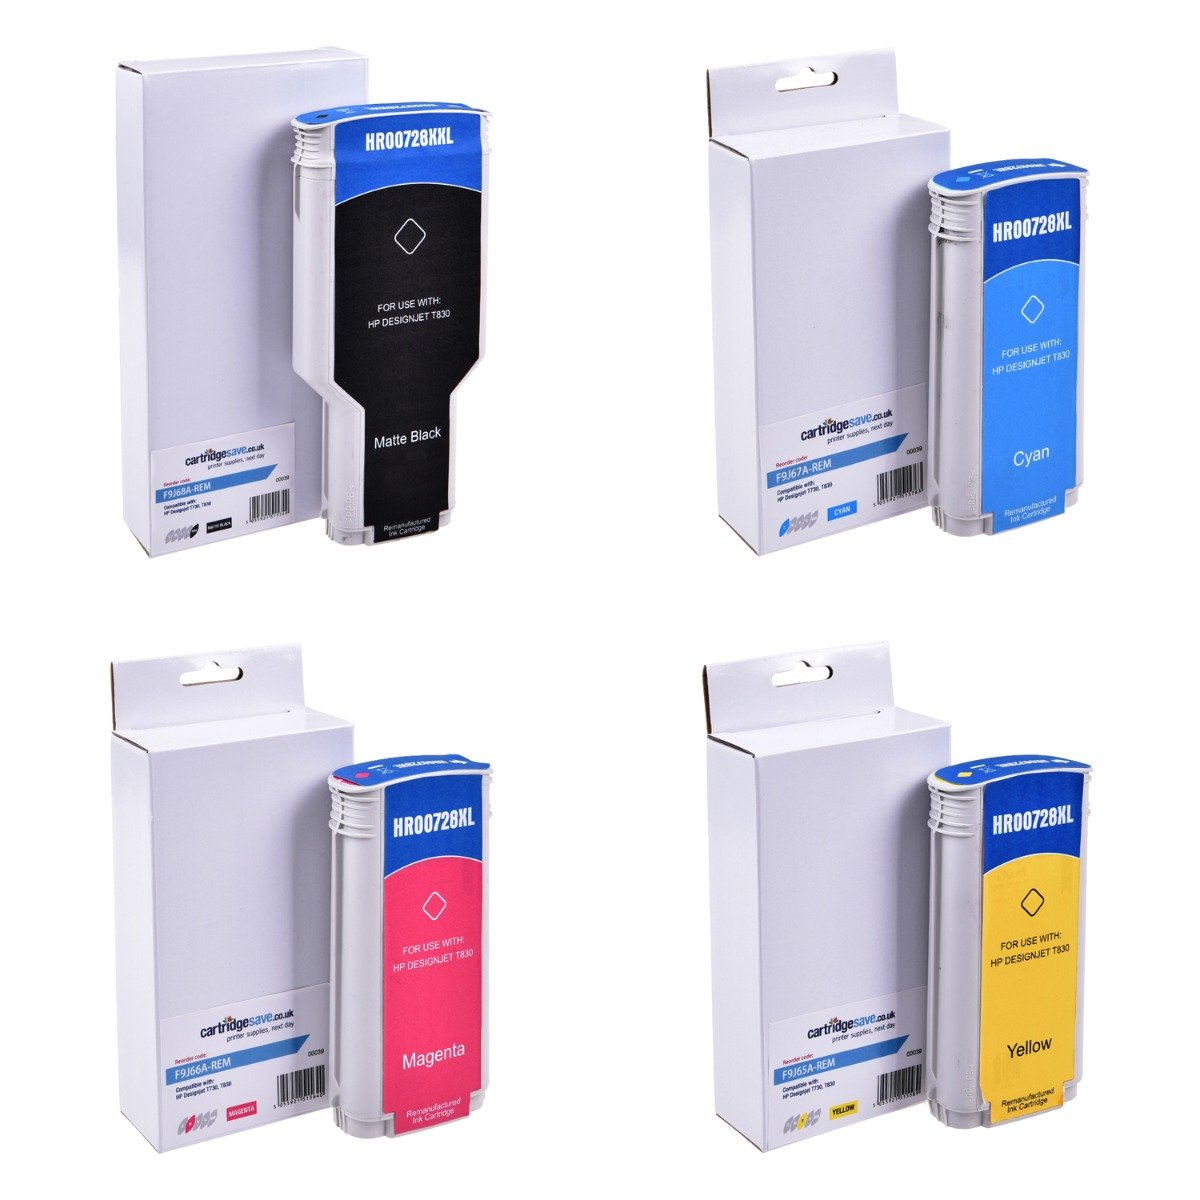 Compatible 4 Colour High Capacity HP 728 Ink Cartridge Multipack - (F9J65A/F9J66A/F9J67A/F9J68A)